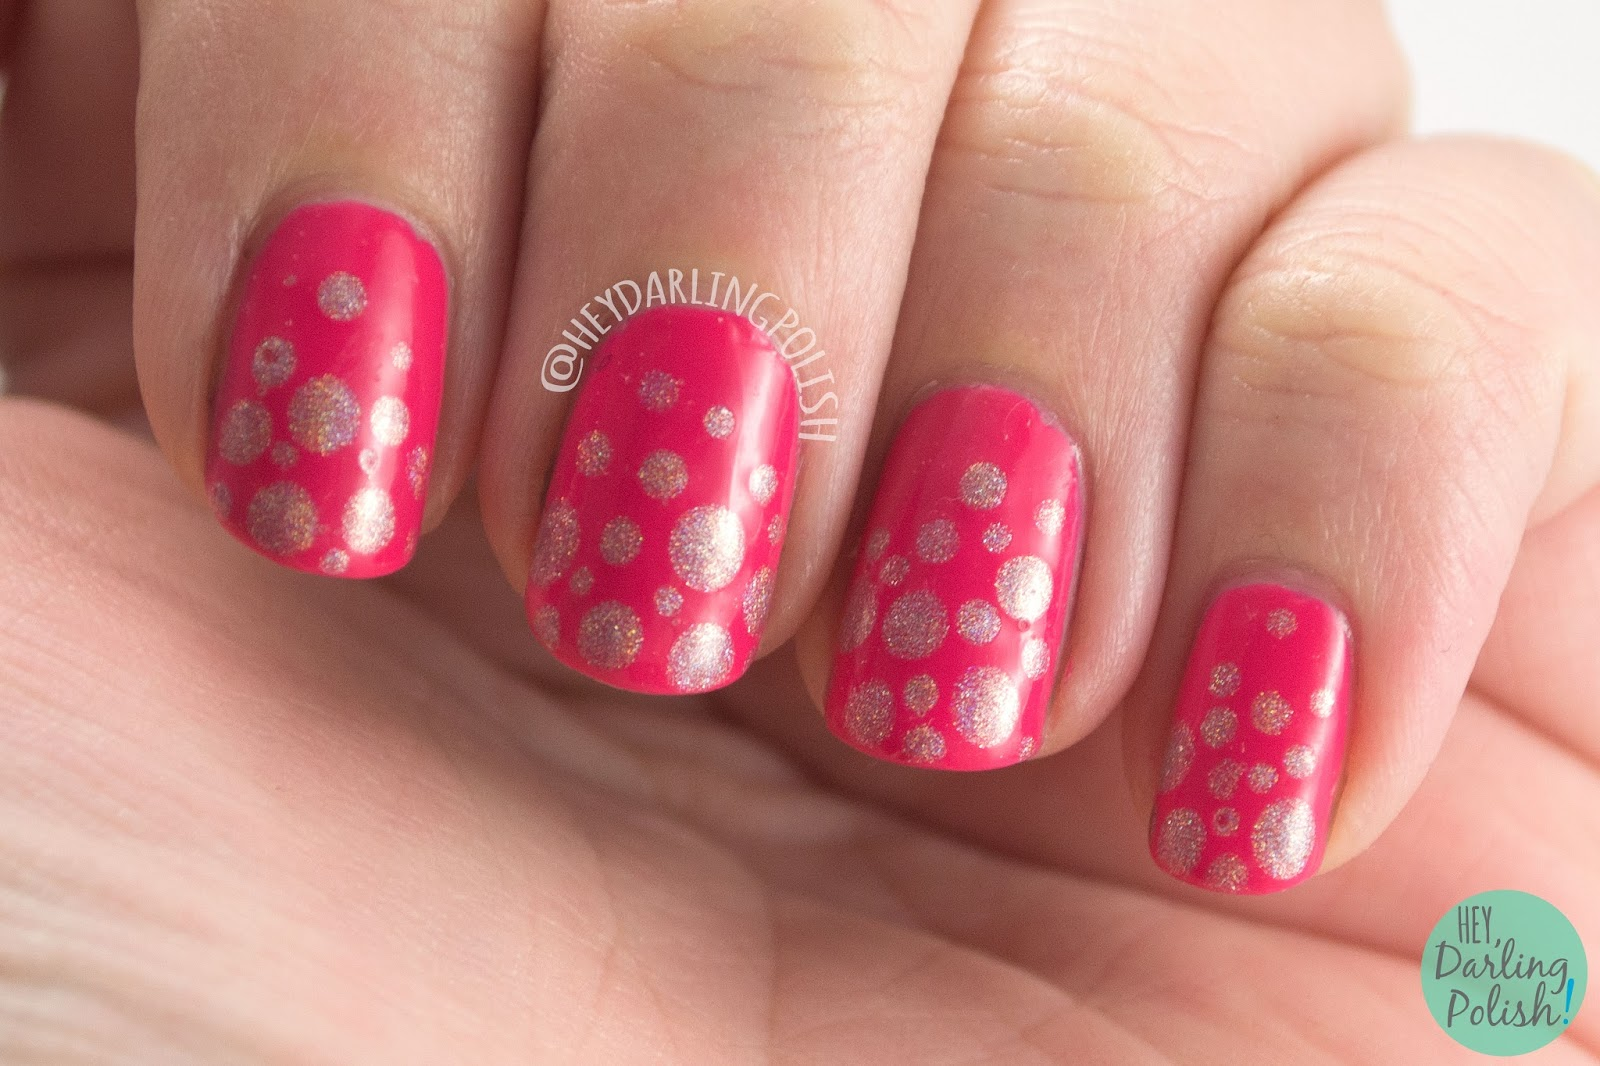 indie polish, nails, nail art, nail polish, pink, polka dots, dots, hey darling polish, nail linkup, bright, holo